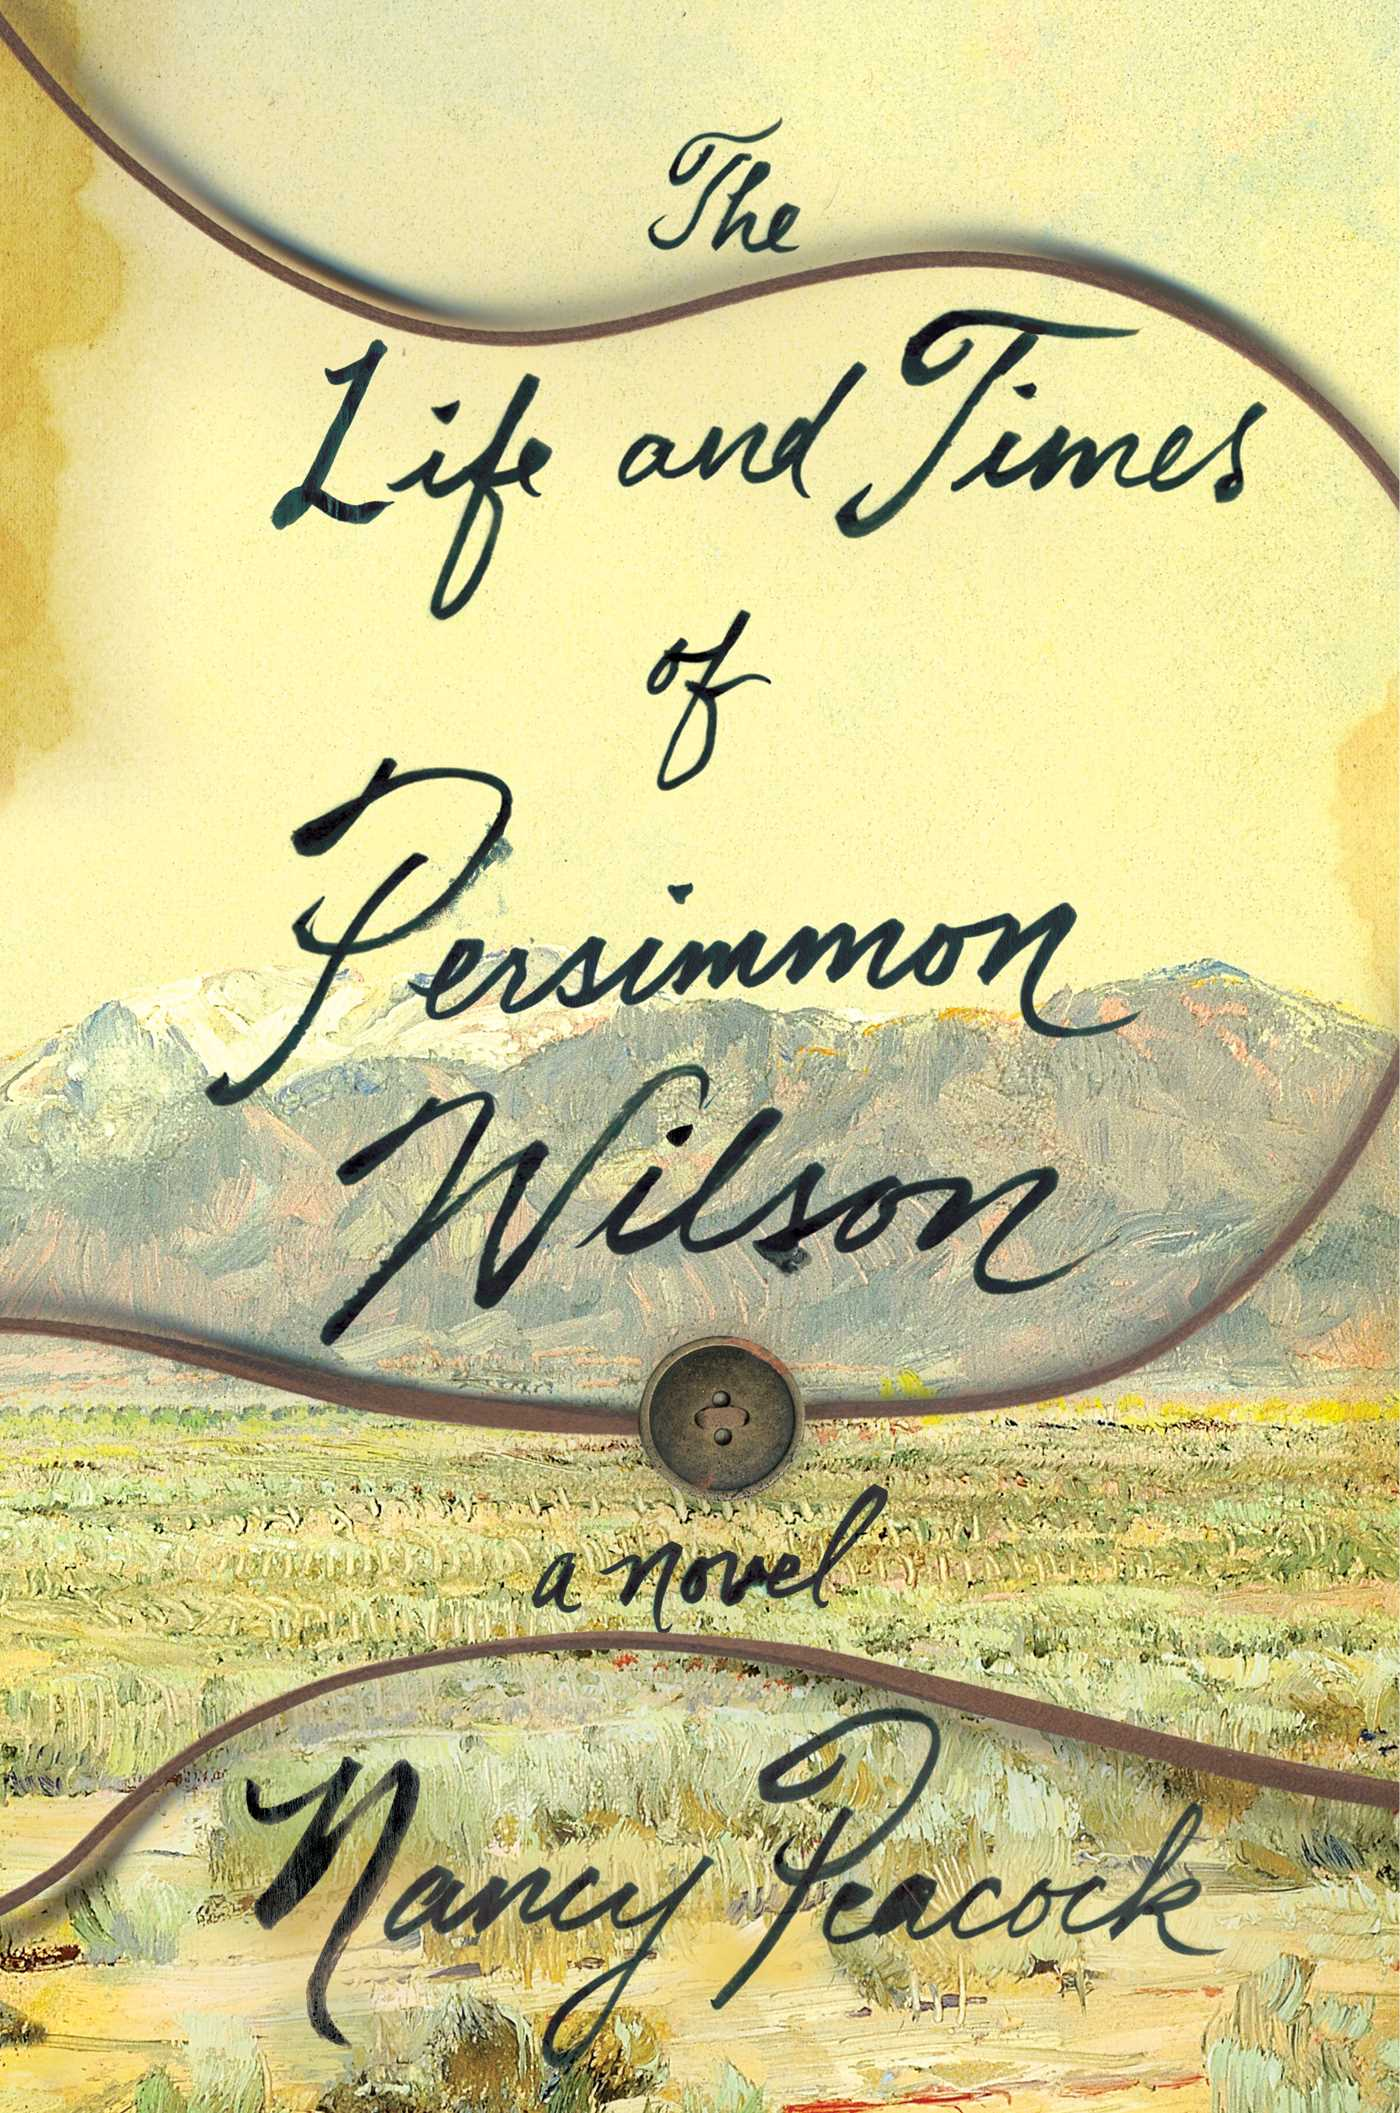 The life and times of persimmon wilson 9781501116353 hr